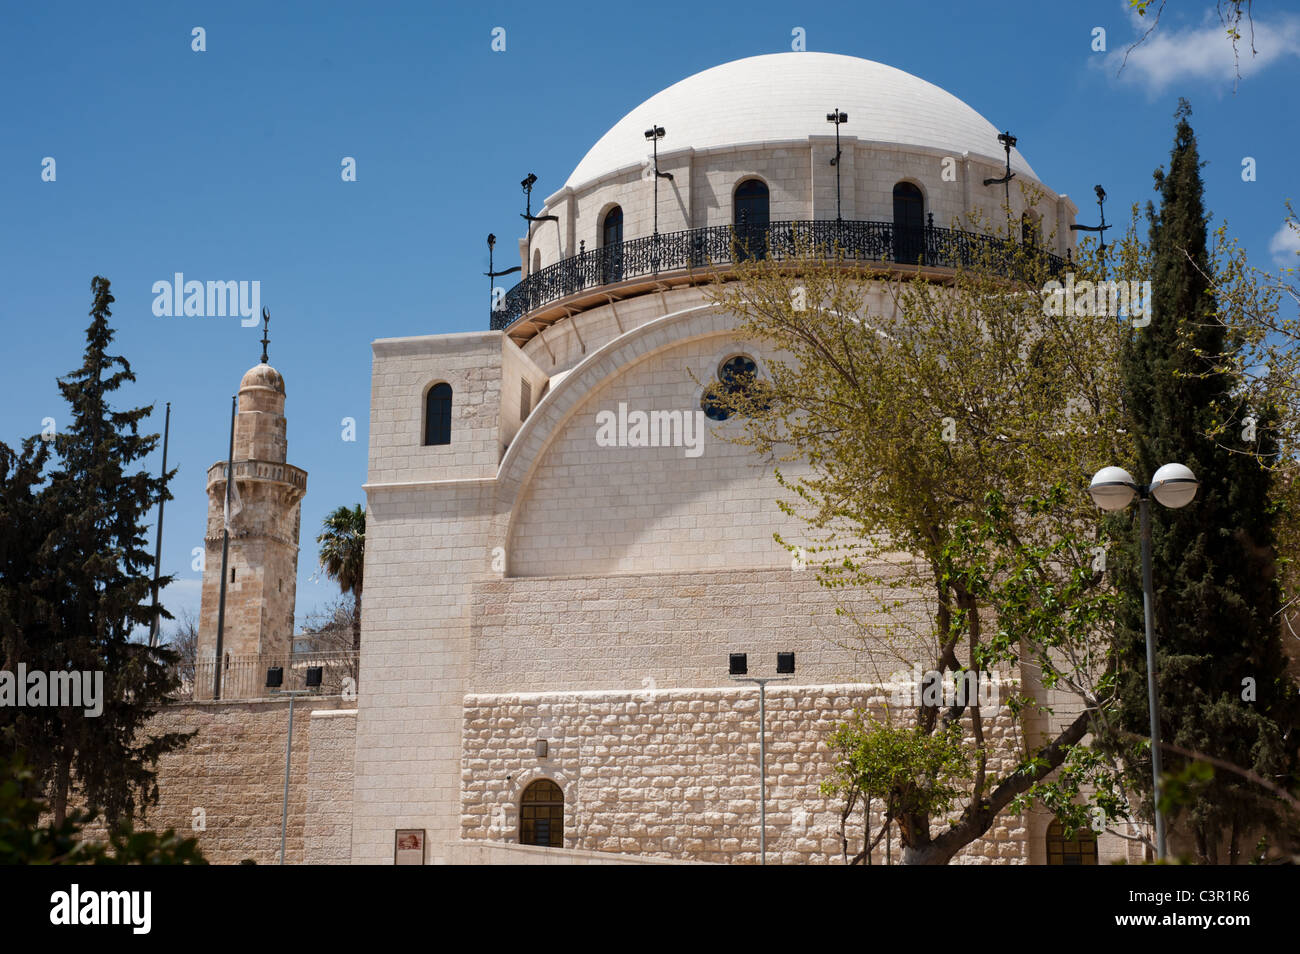 A Muslim minaret rises next to the dome of the Hurva Synagogue in the Jewish Quarter of the Old City of Jerusalem. - Stock Image